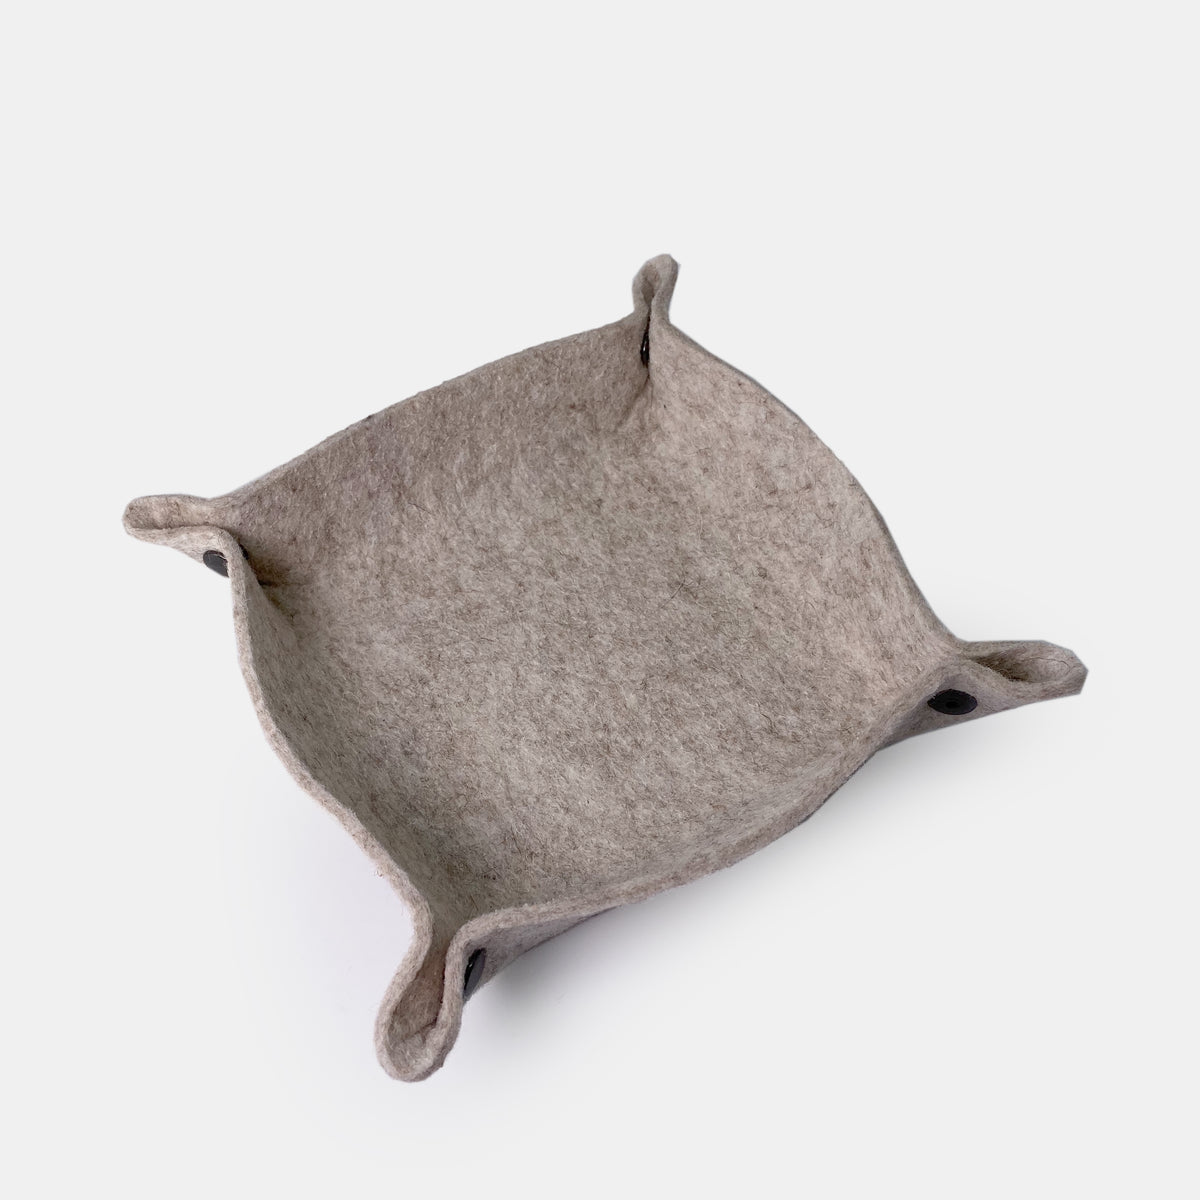 Catch-all Tray - Wool Felt - RYAN London